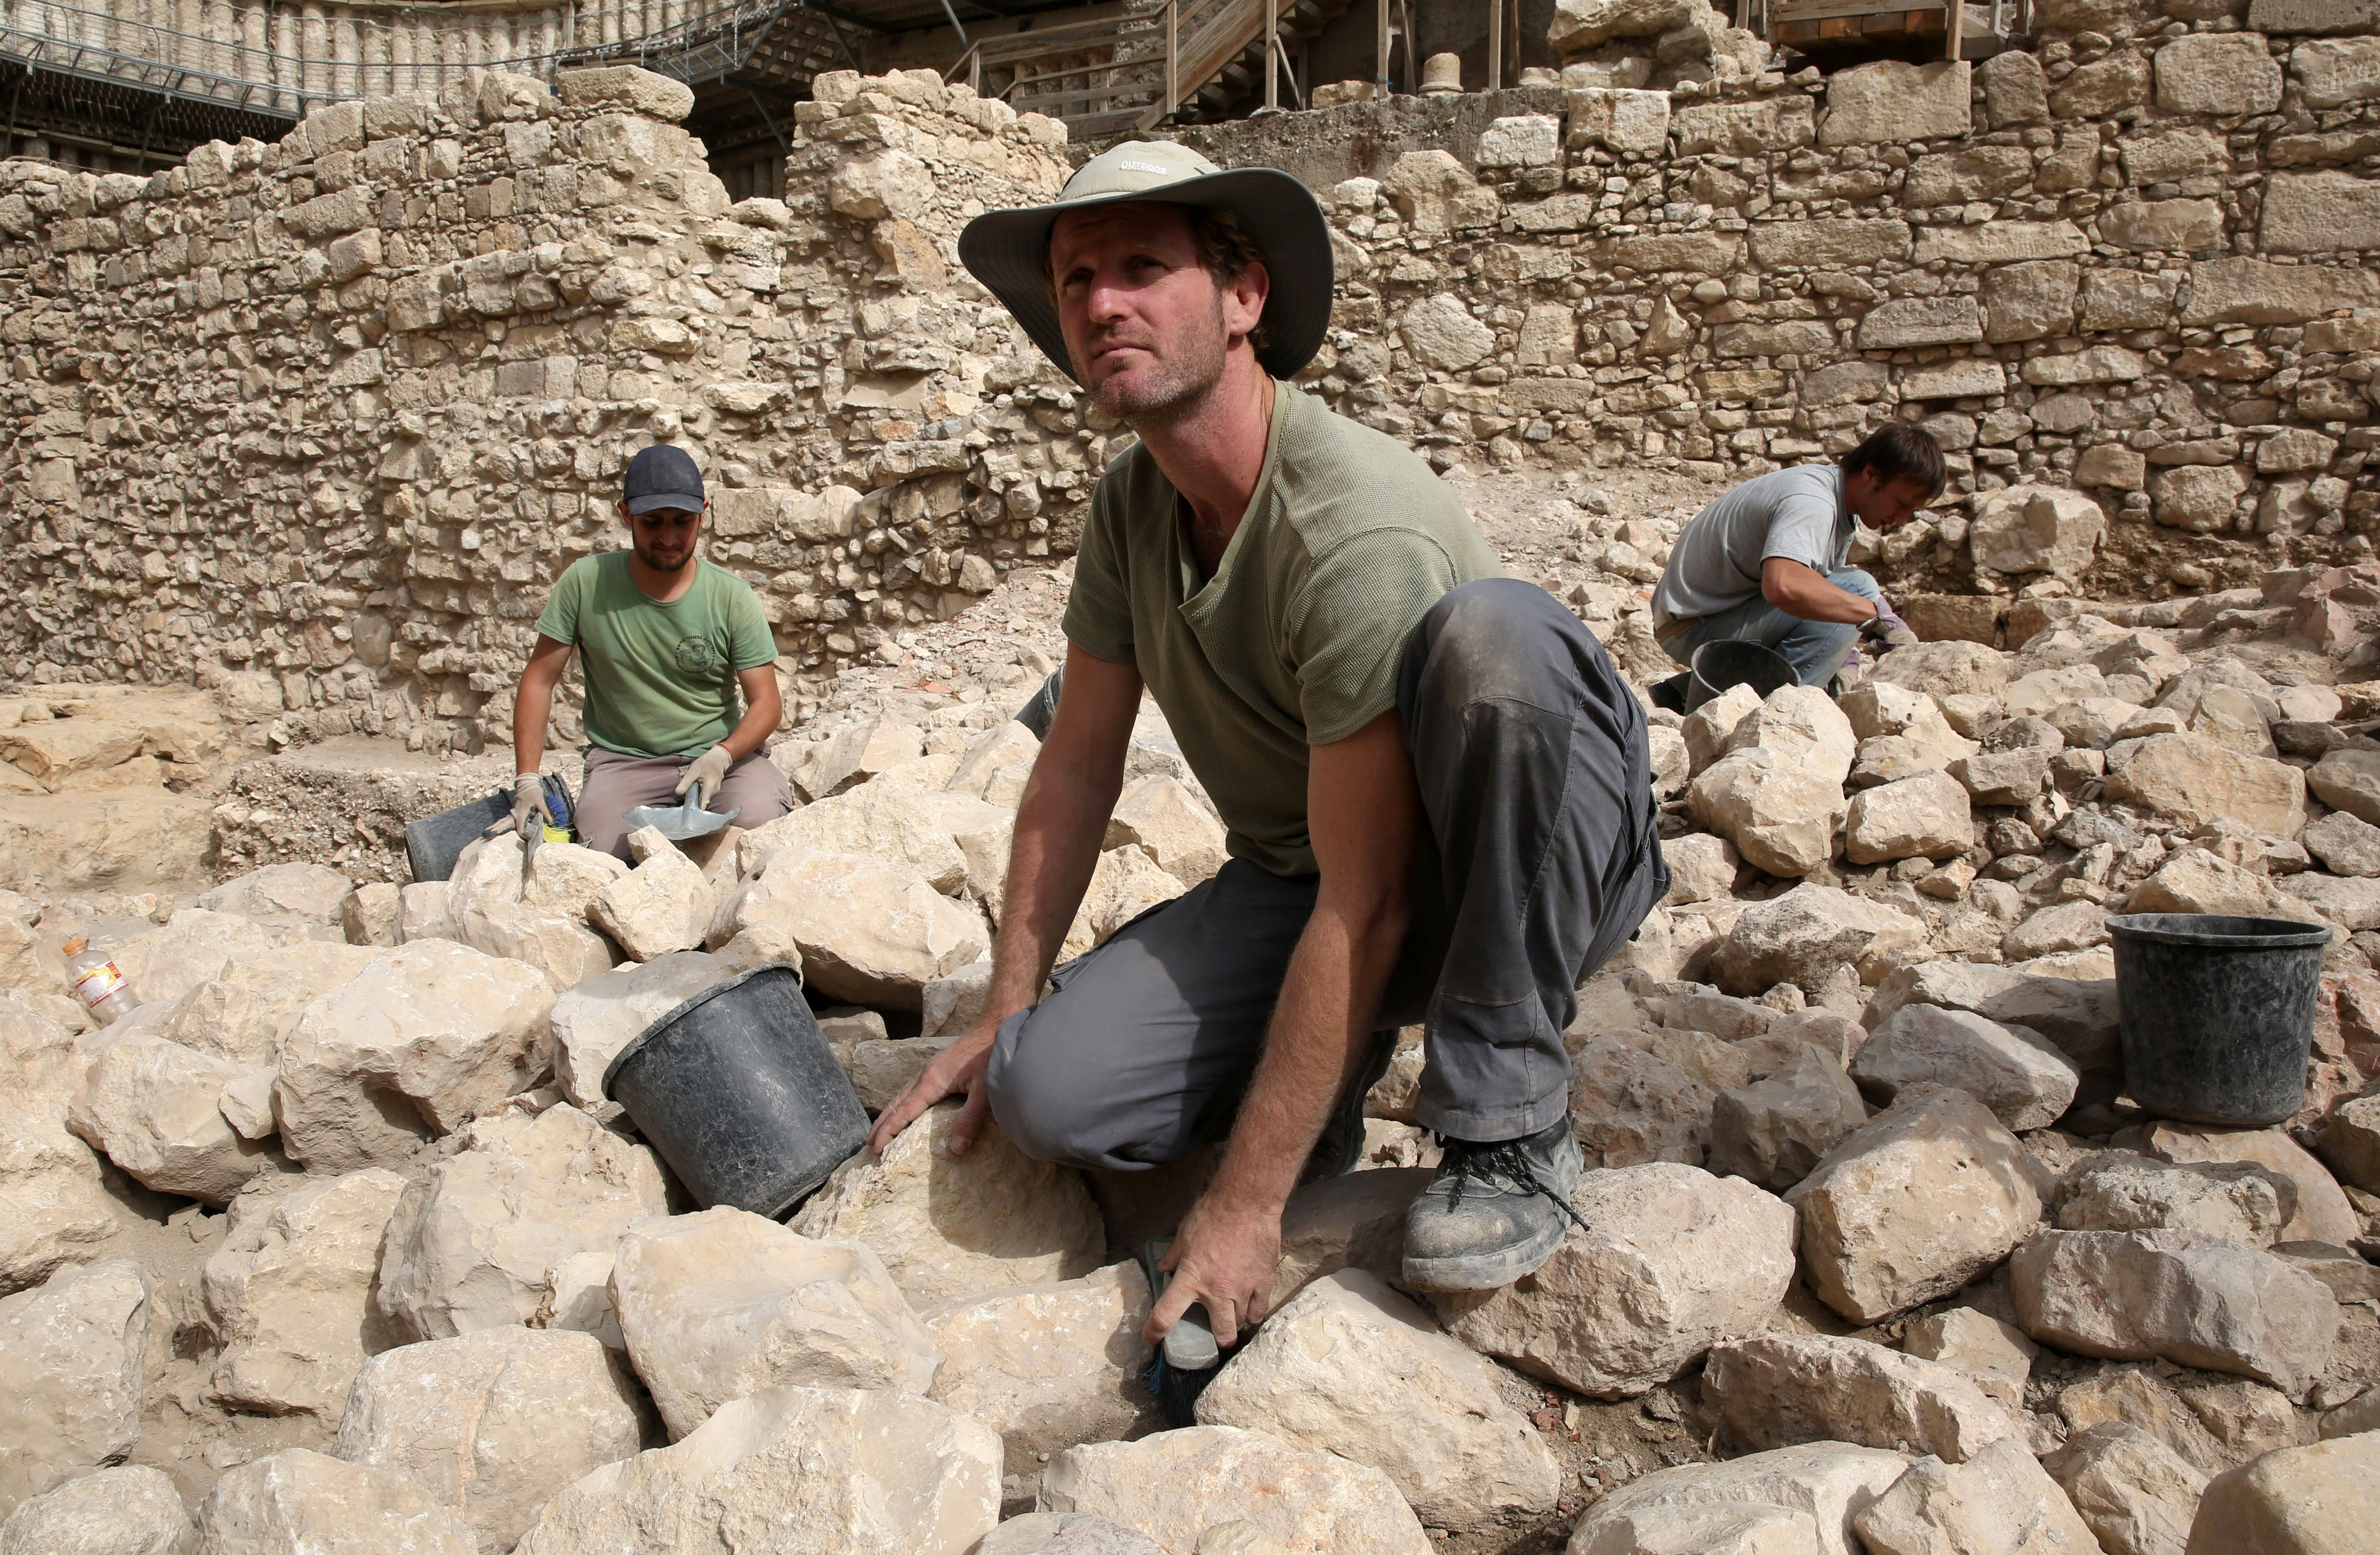 Workers from the Israeli Antiquity Authorities dig on November 3, 2015 at the excavation site near the City of David adjacent to Jerusalem's Old City walls where researchers believe to have found the remains of the stronghold the Acra